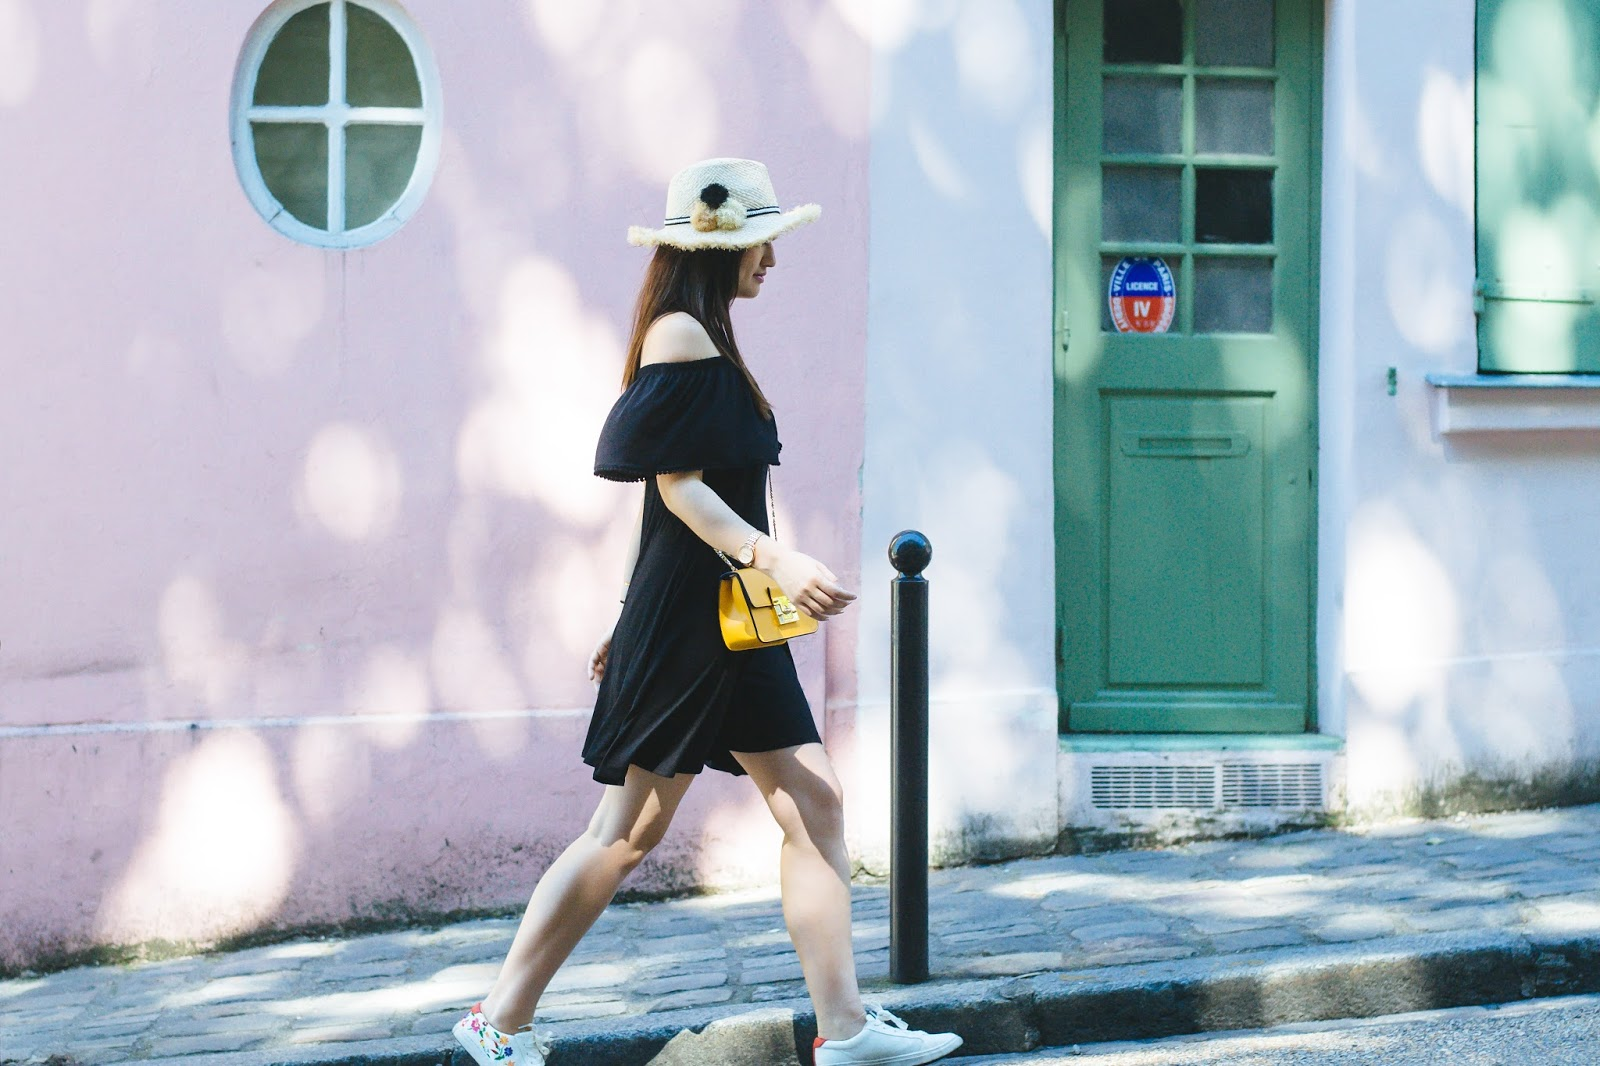 marks&Spencer-blackdress-paris-summerlook-styling-parisianstyle-meetmeinparee